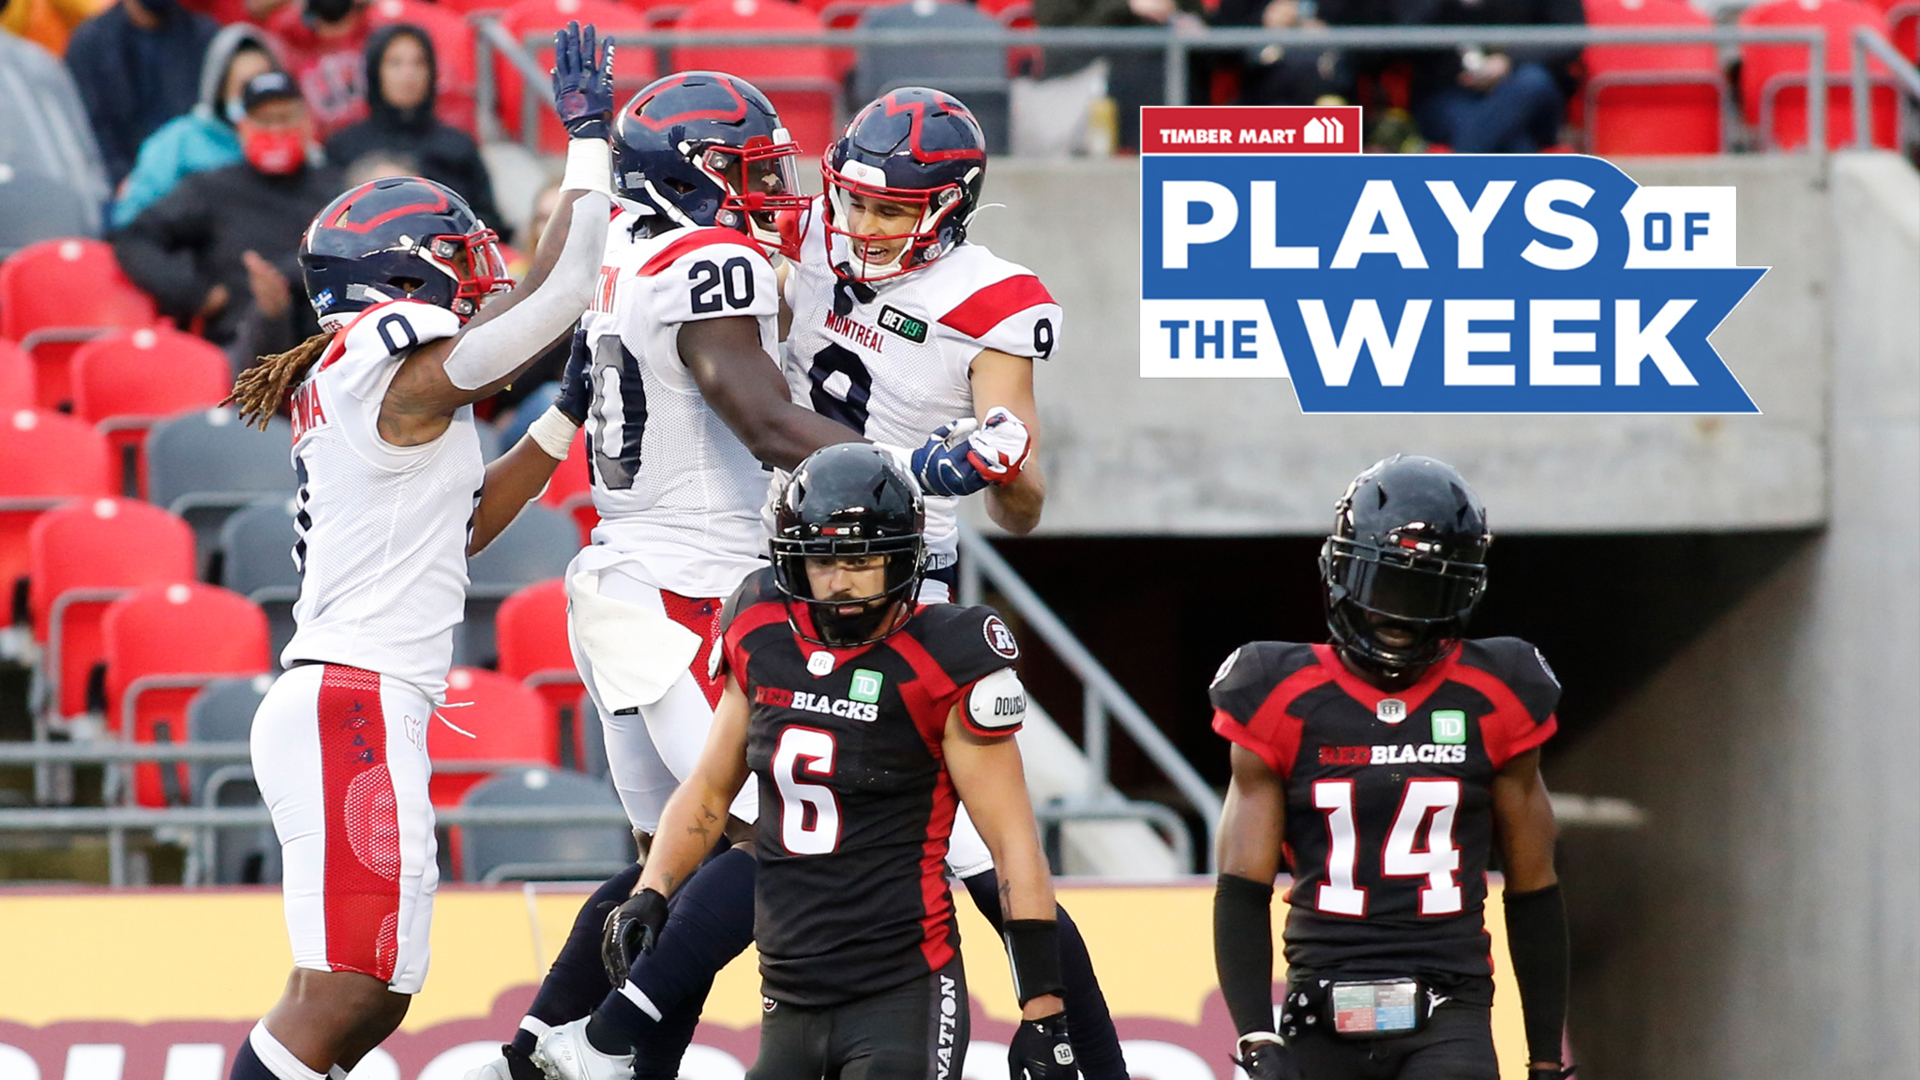 'TD Jake' leaps into Timber Mart Plays of the Week